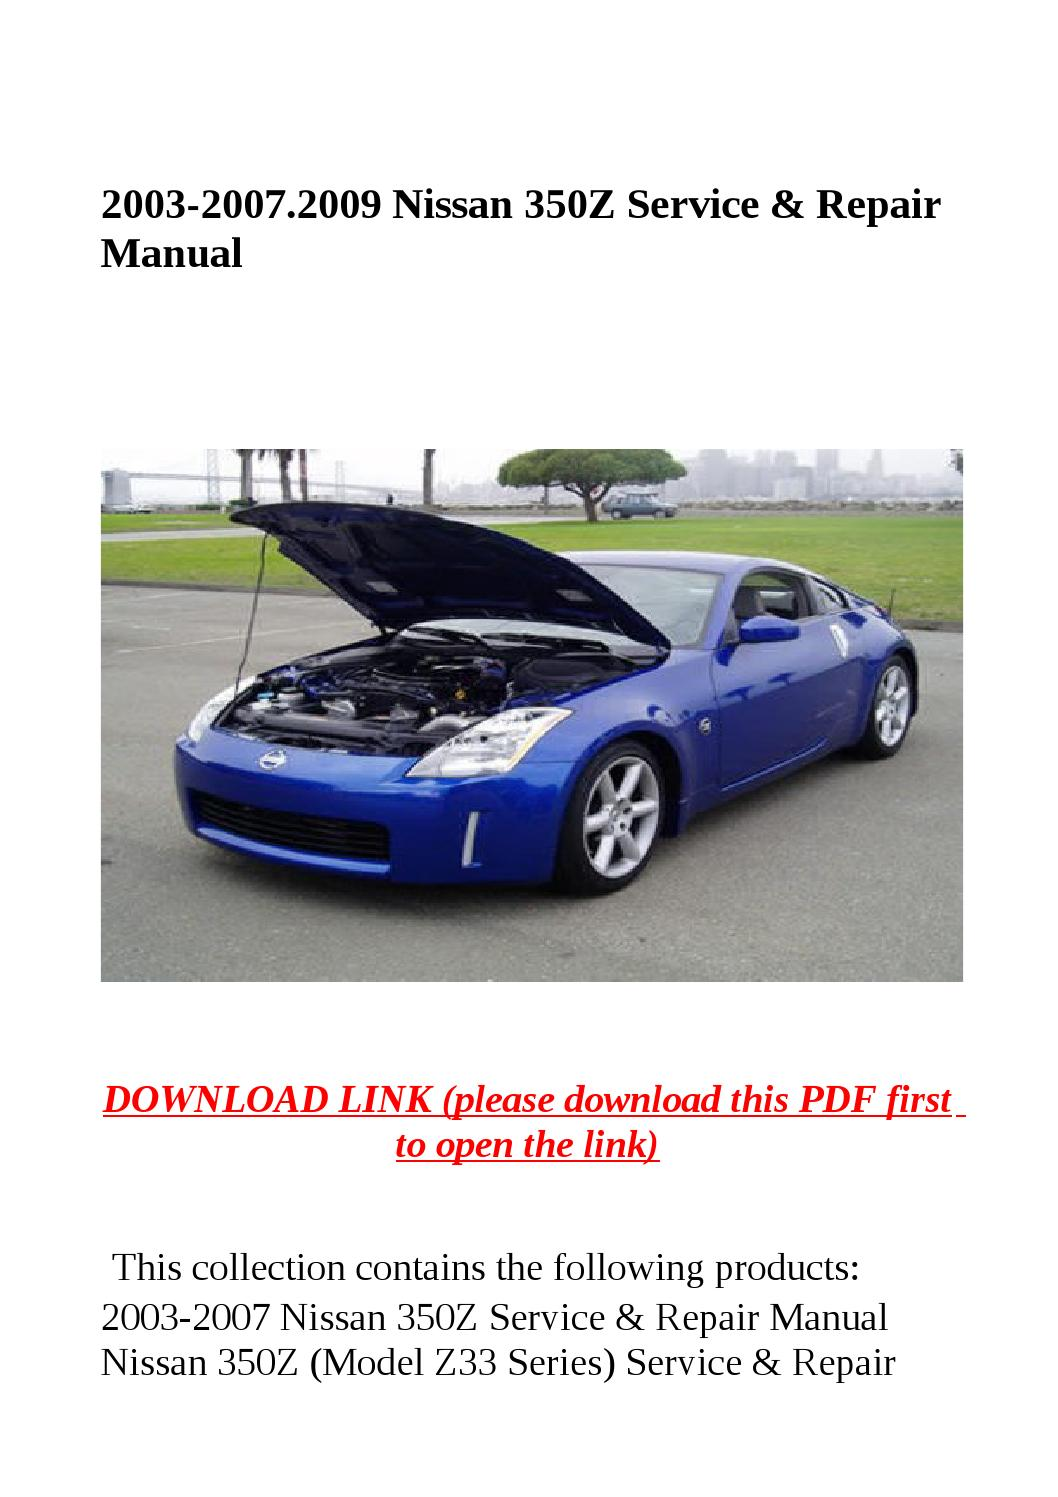 2003 2007 2009 nissan 350z service repair manual by yhkj. Black Bedroom Furniture Sets. Home Design Ideas